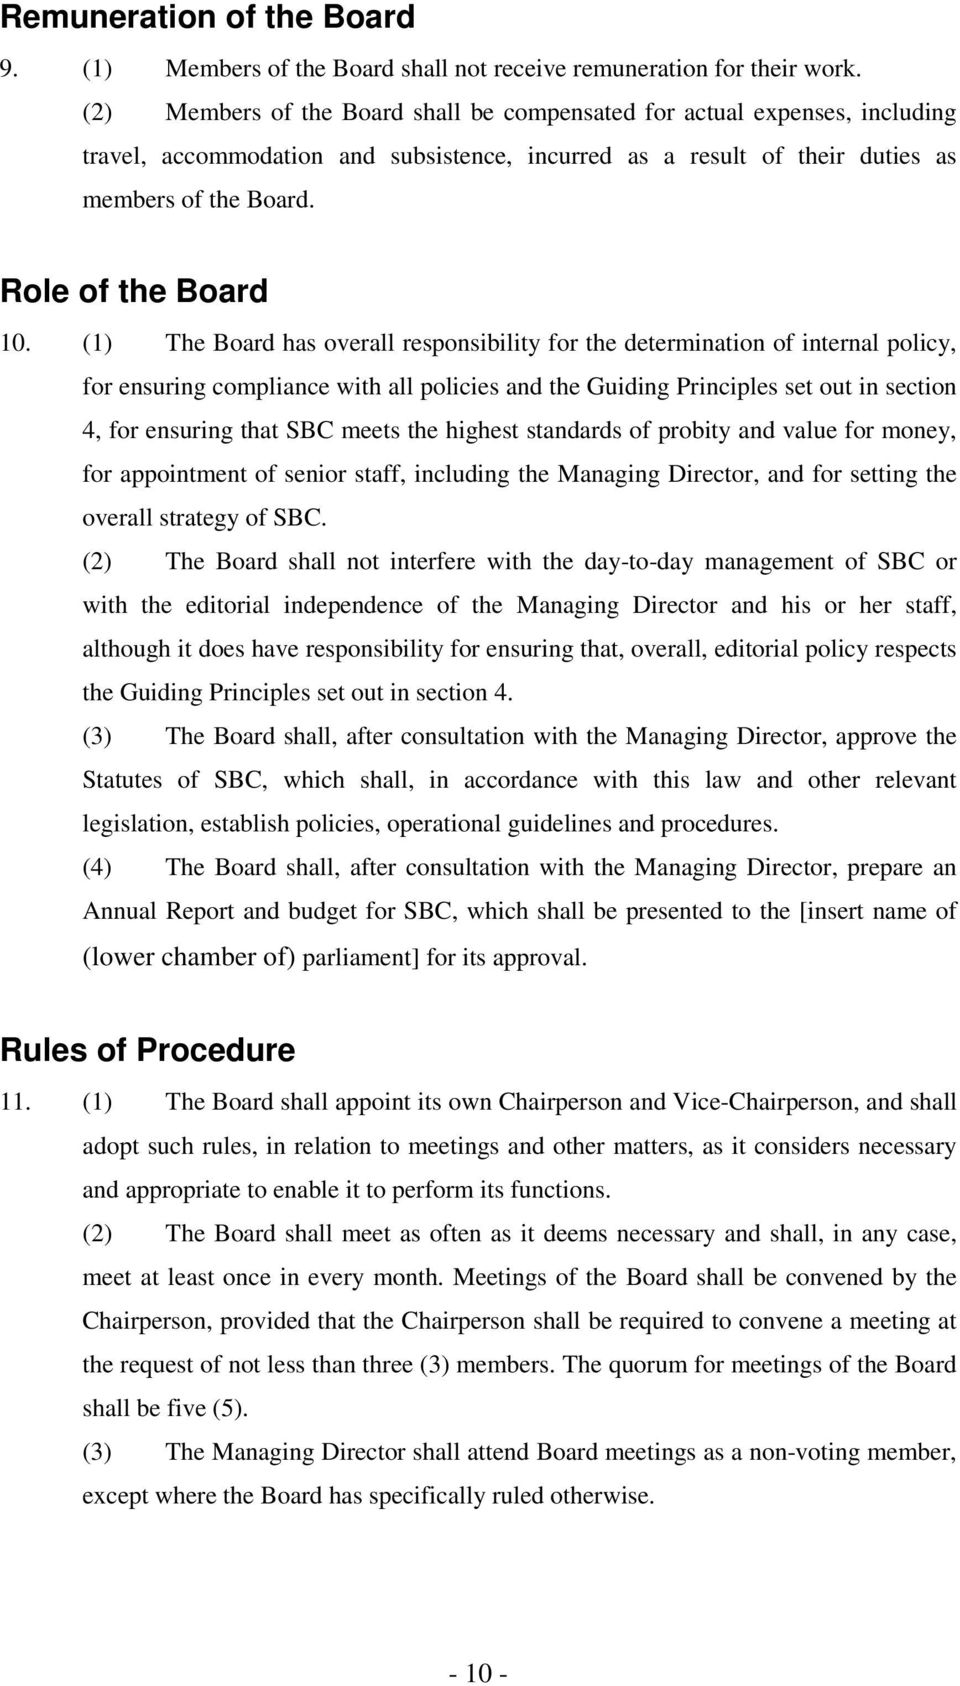 (1) The Board has overall responsibility for the determination of internal policy, for ensuring compliance with all policies and the Guiding Principles set out in section 4, for ensuring that SBC